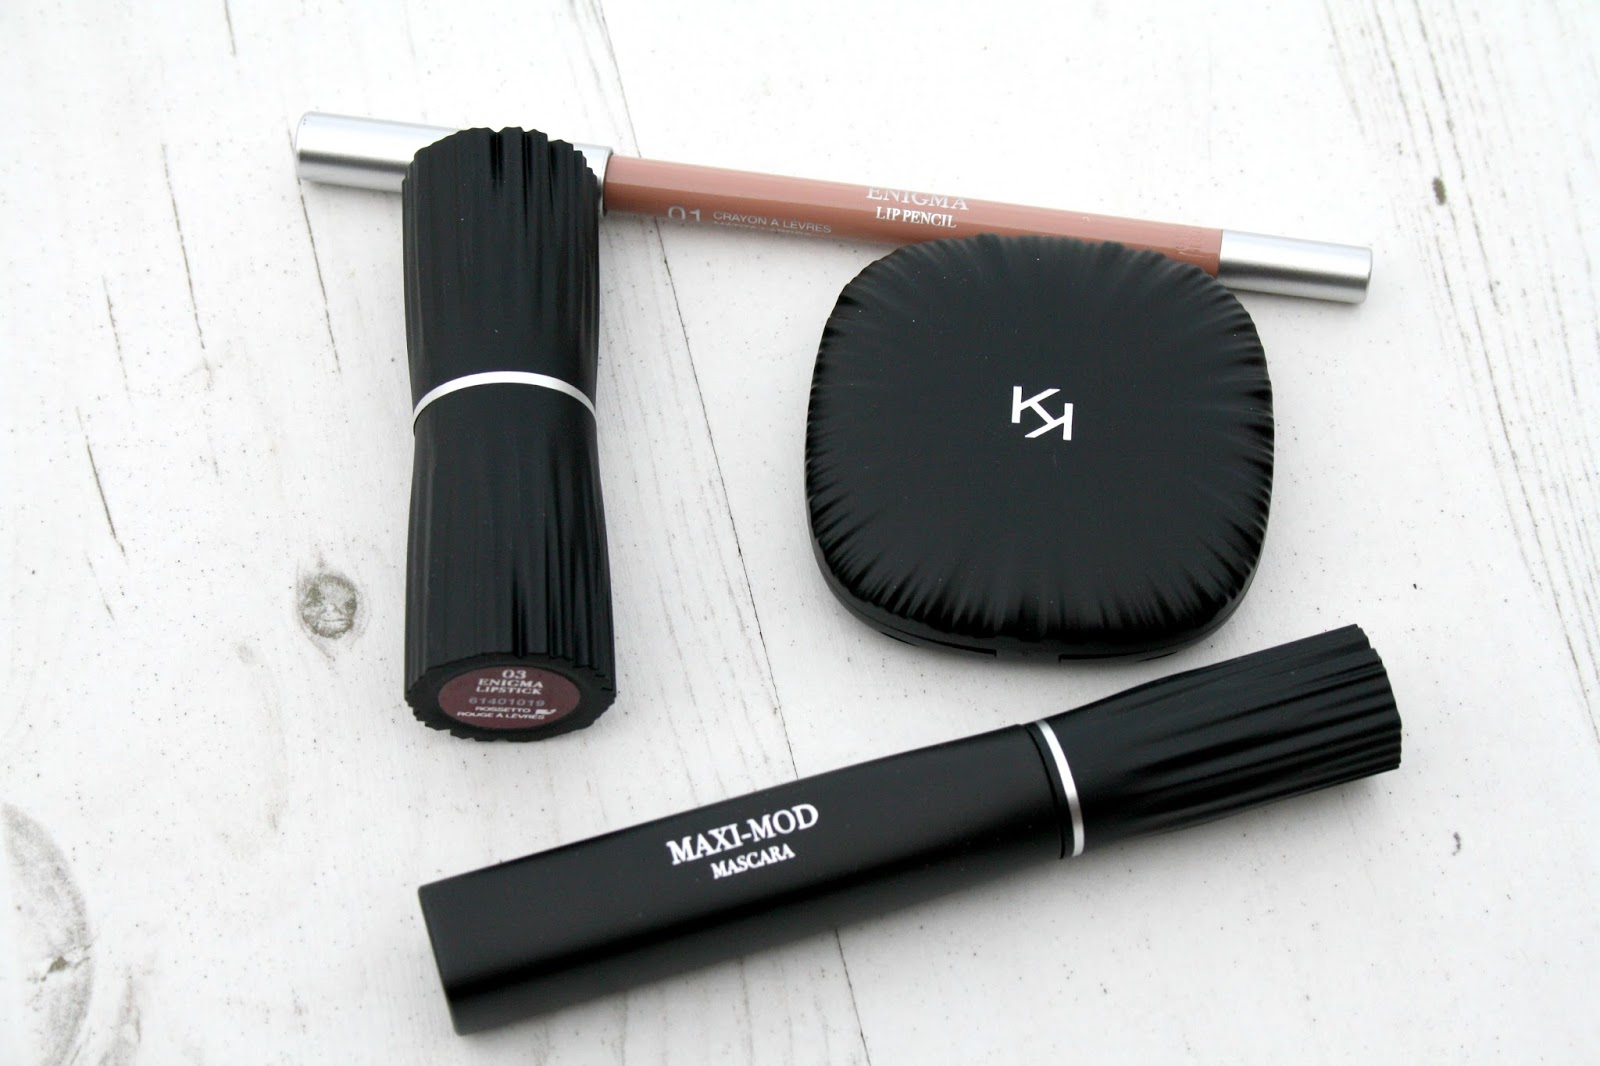 224b628a216 Beautyqueenuk | A UK Beauty and Lifestyle Blog: Kiko Milano Neo Noir ...